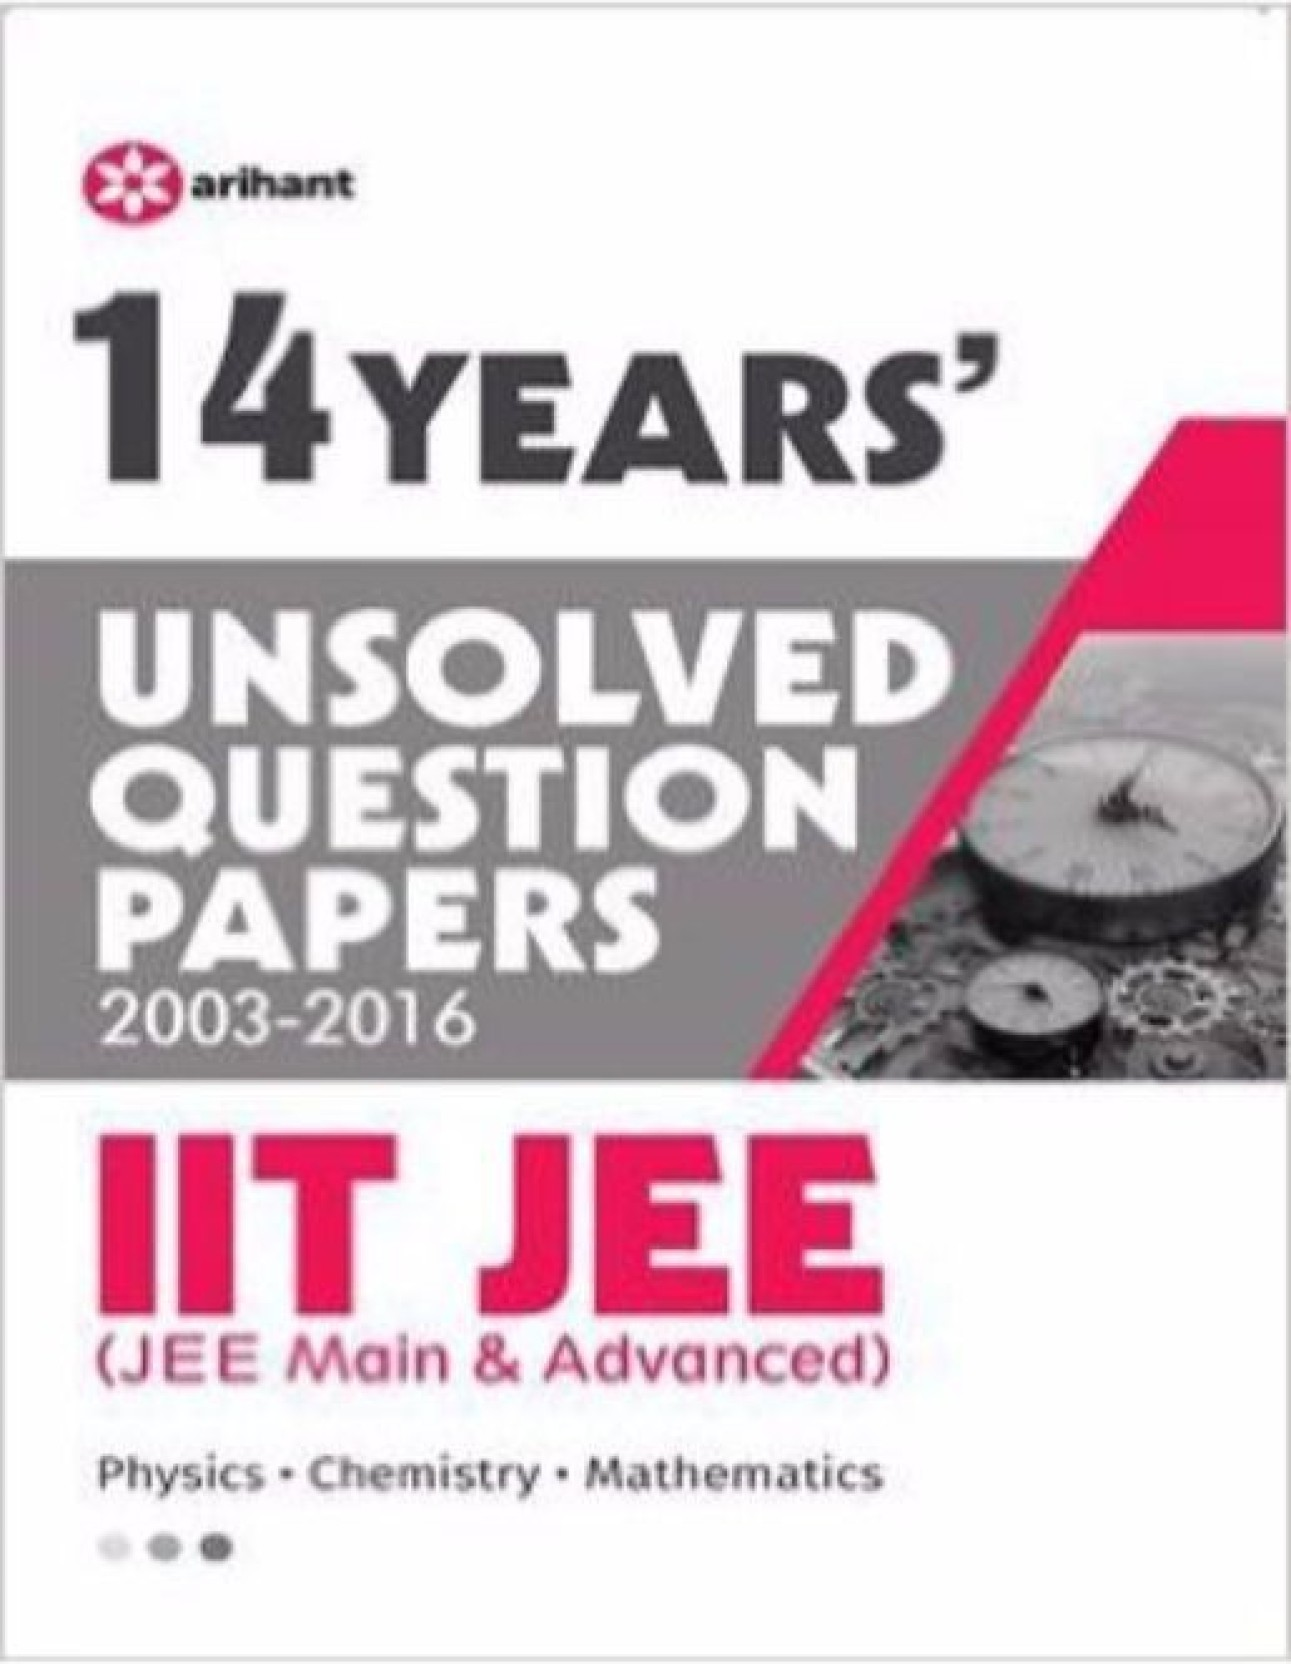 14 Years Unsolved Question Papers (2003-2016) IIT JEE (JEE MAIN n. ADD TO  CART